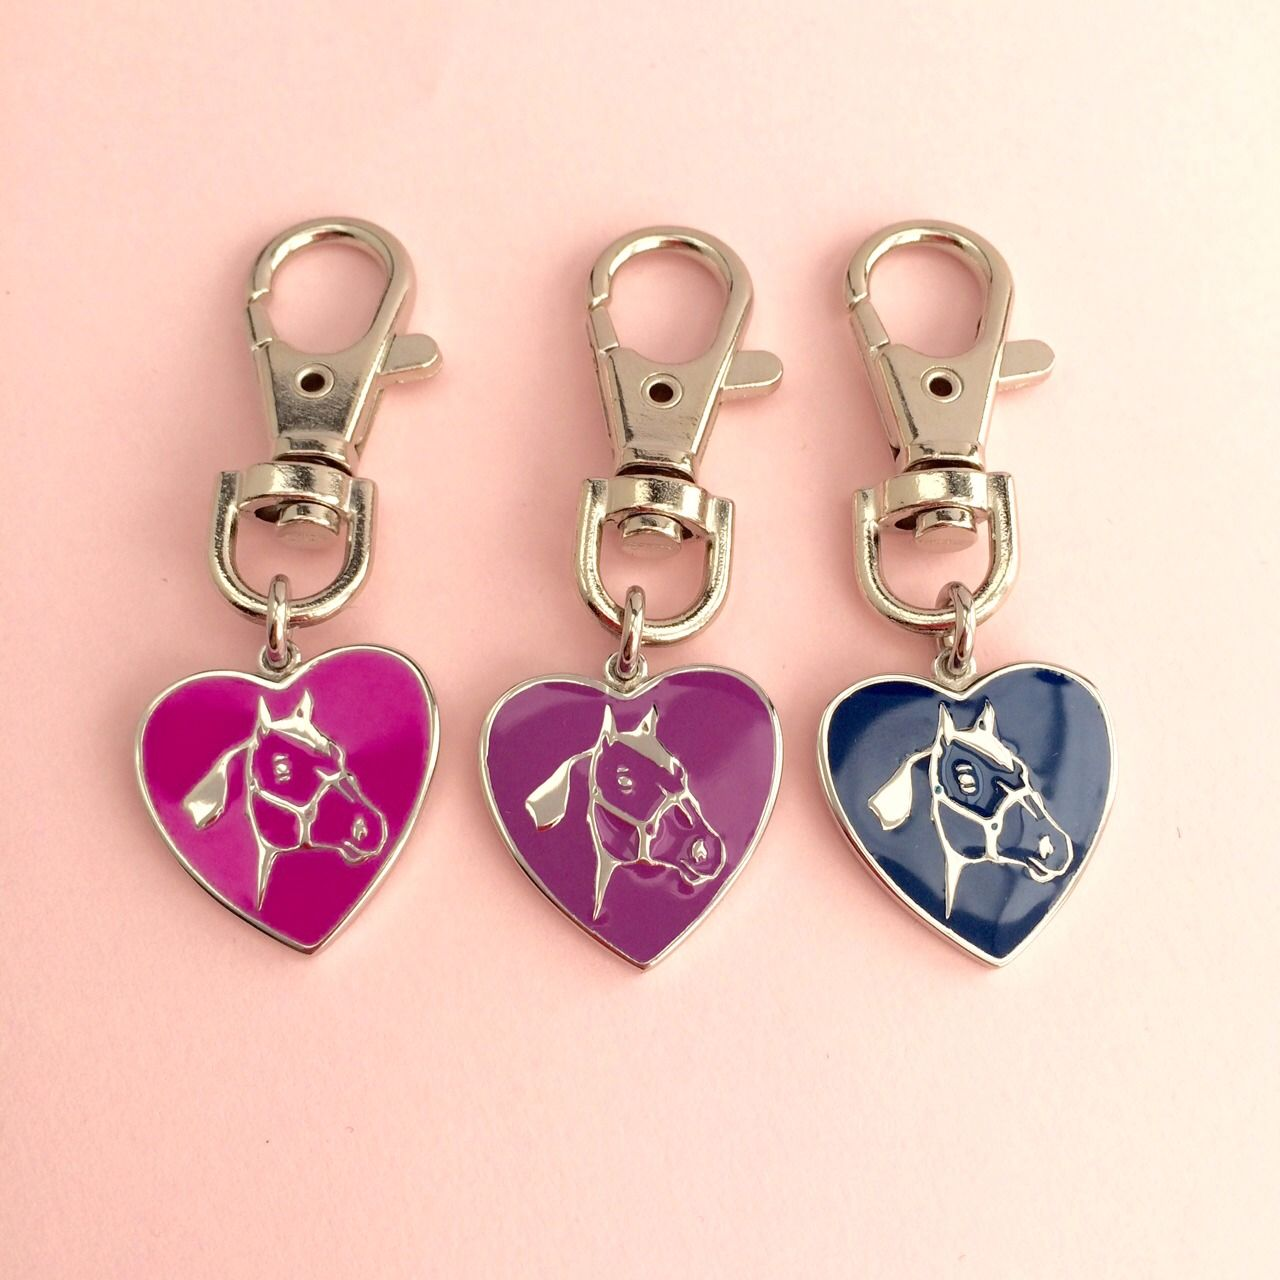 Engraved Bridle Tag, Saddle Tag, Tack id | Jewels 4 Girls